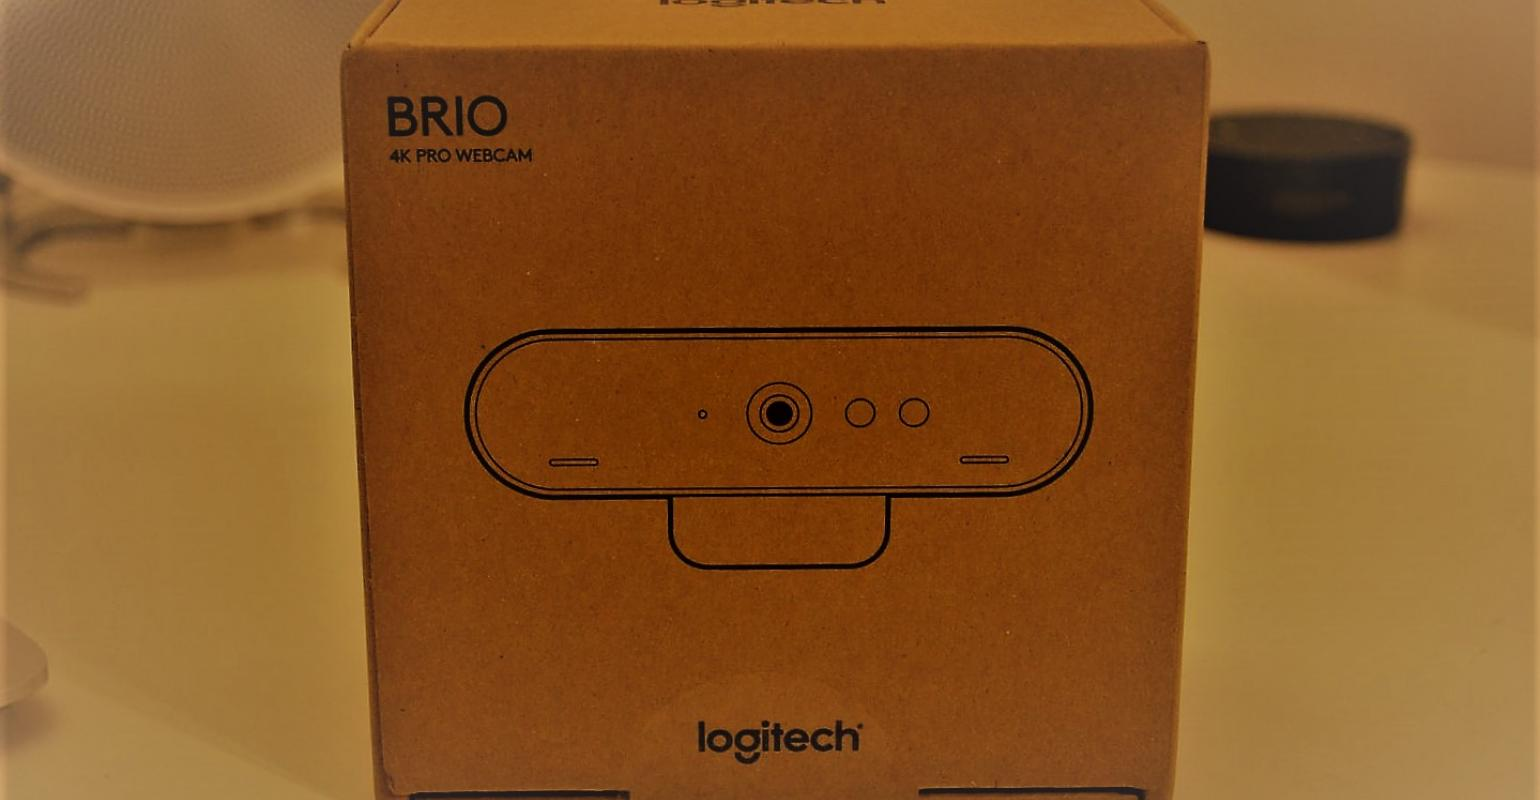 Hardware   Check out more info about the Logitech BRIO and